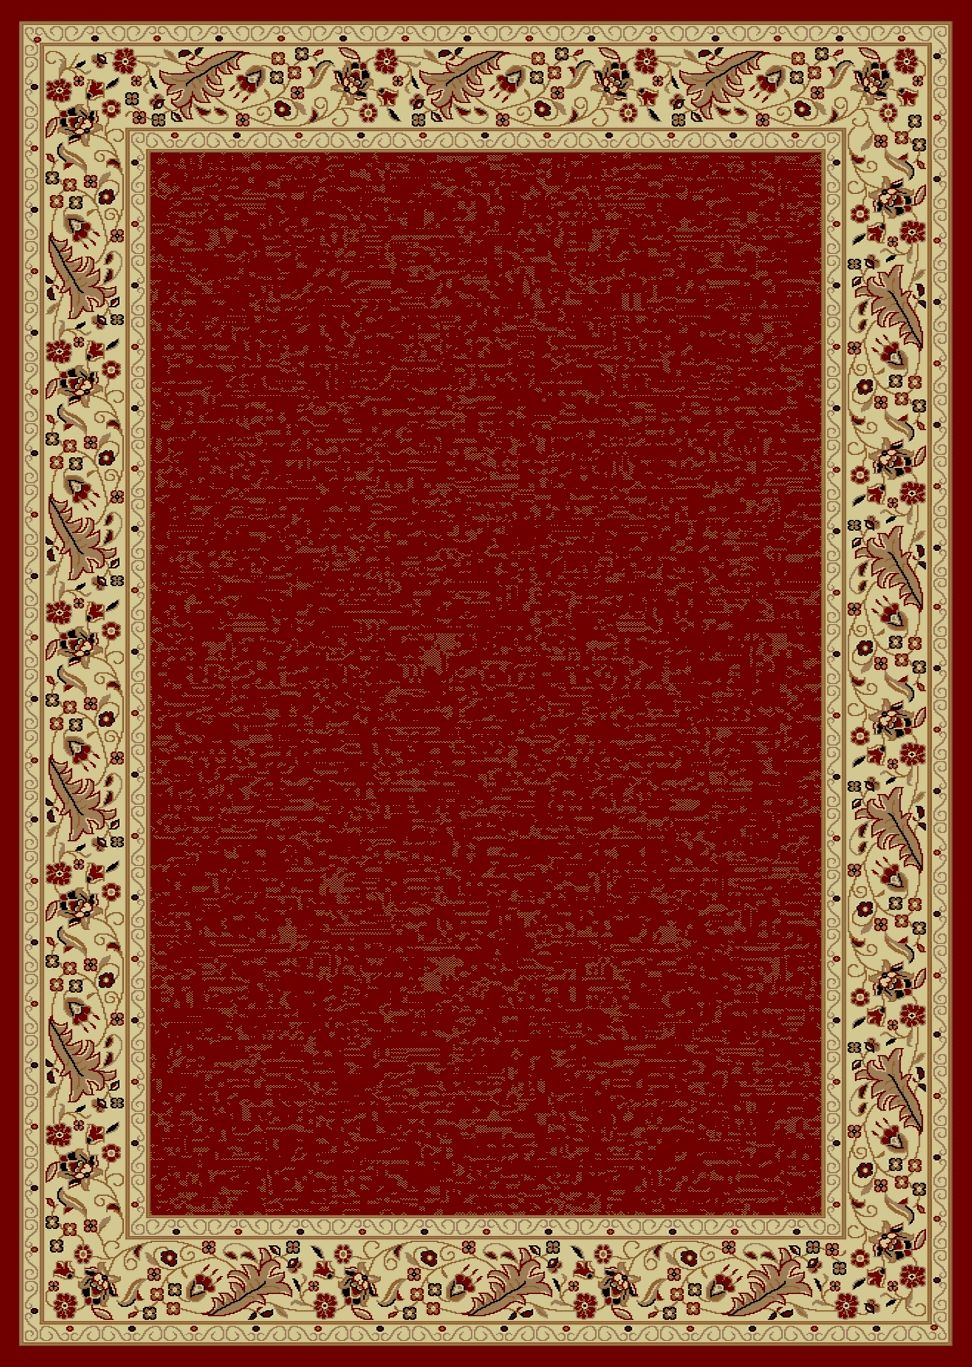 radici usa italia contemporary area rug collection